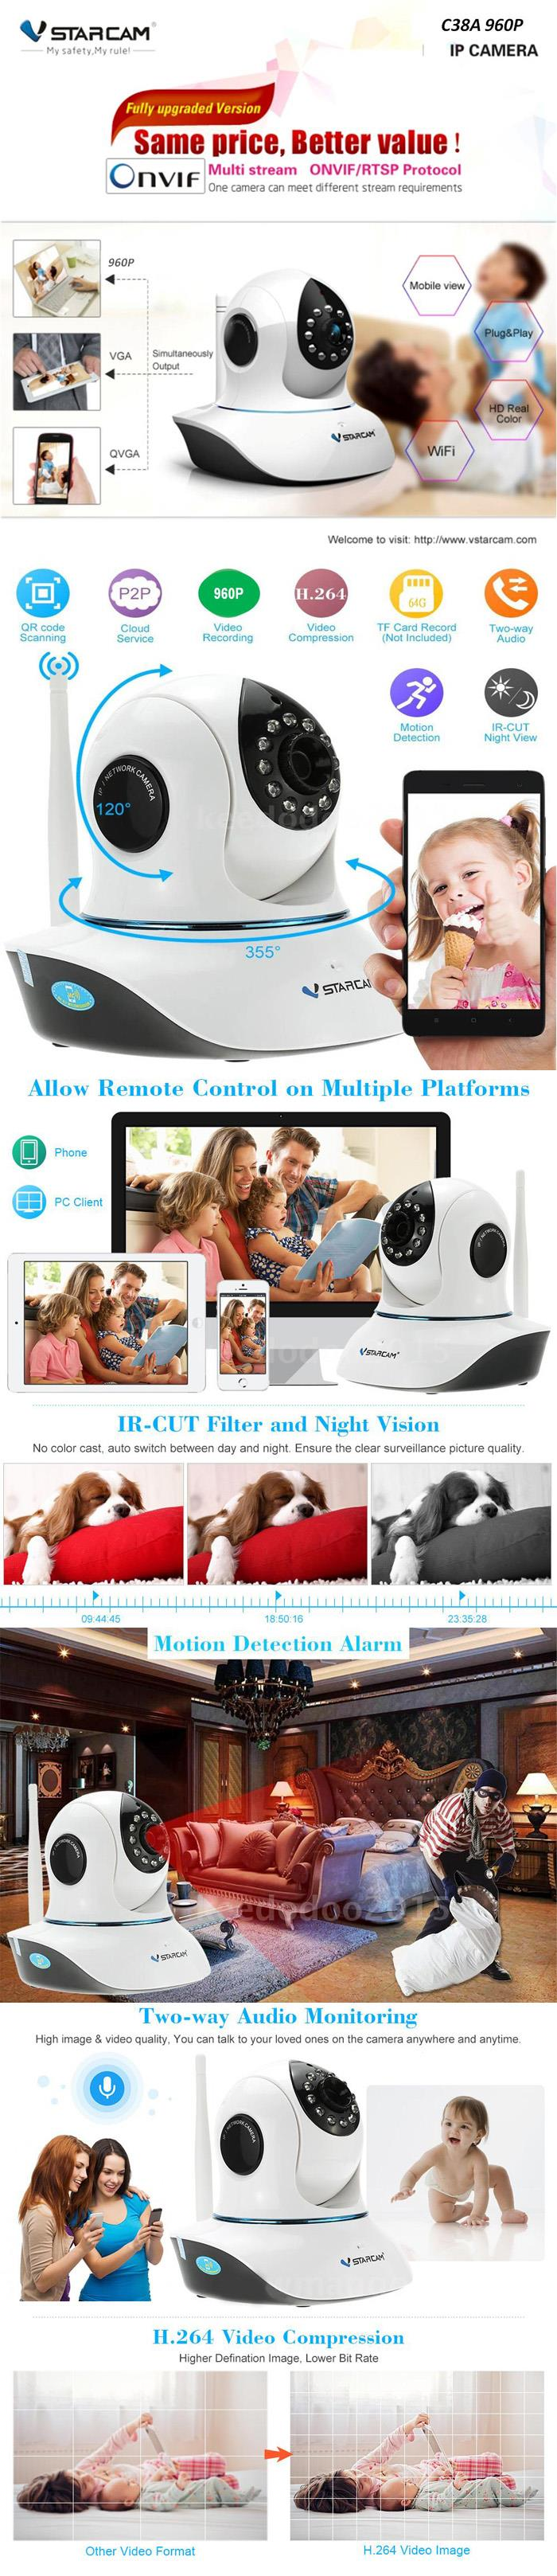 VSTARCAM Wifi IP Camera CCTV P2P HD 960P Pan and Tilt C38A